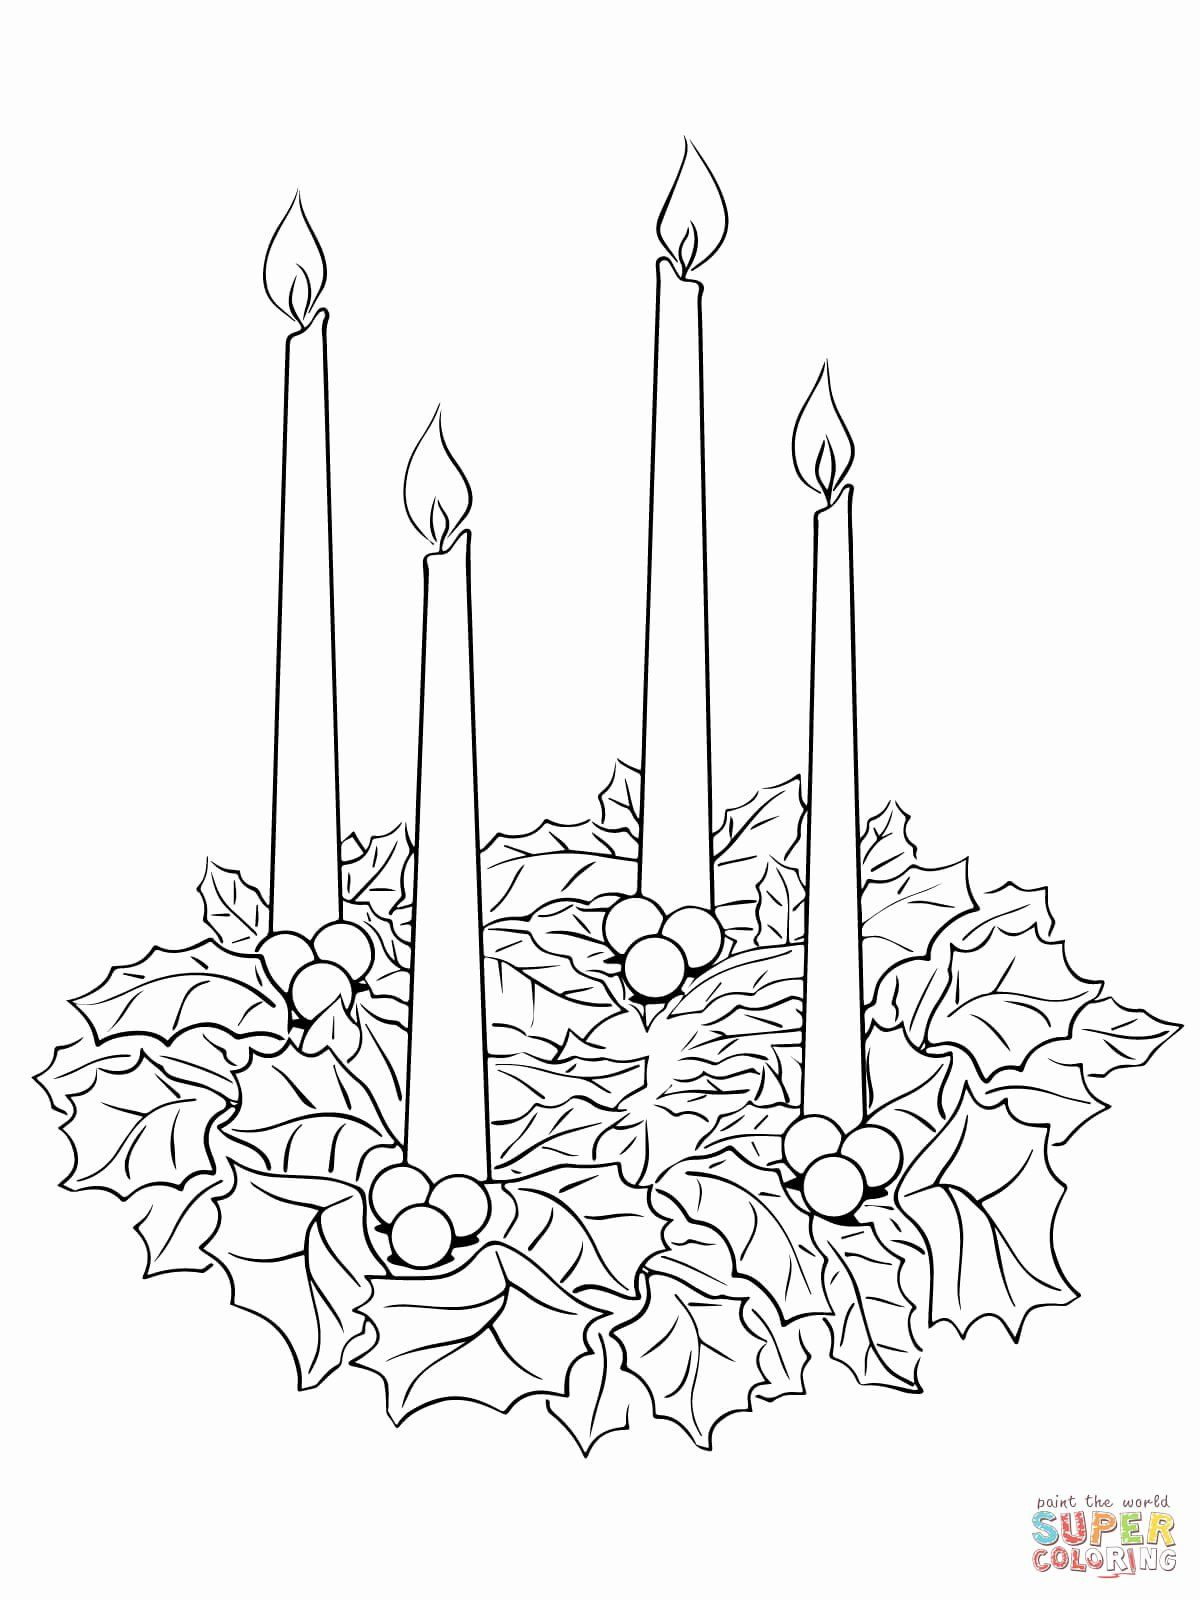 Advent Wreath Coloring Page Fresh Advent Wreath Coloring Page Advent Coloring Christmas Coloring Pages Wreath Printable